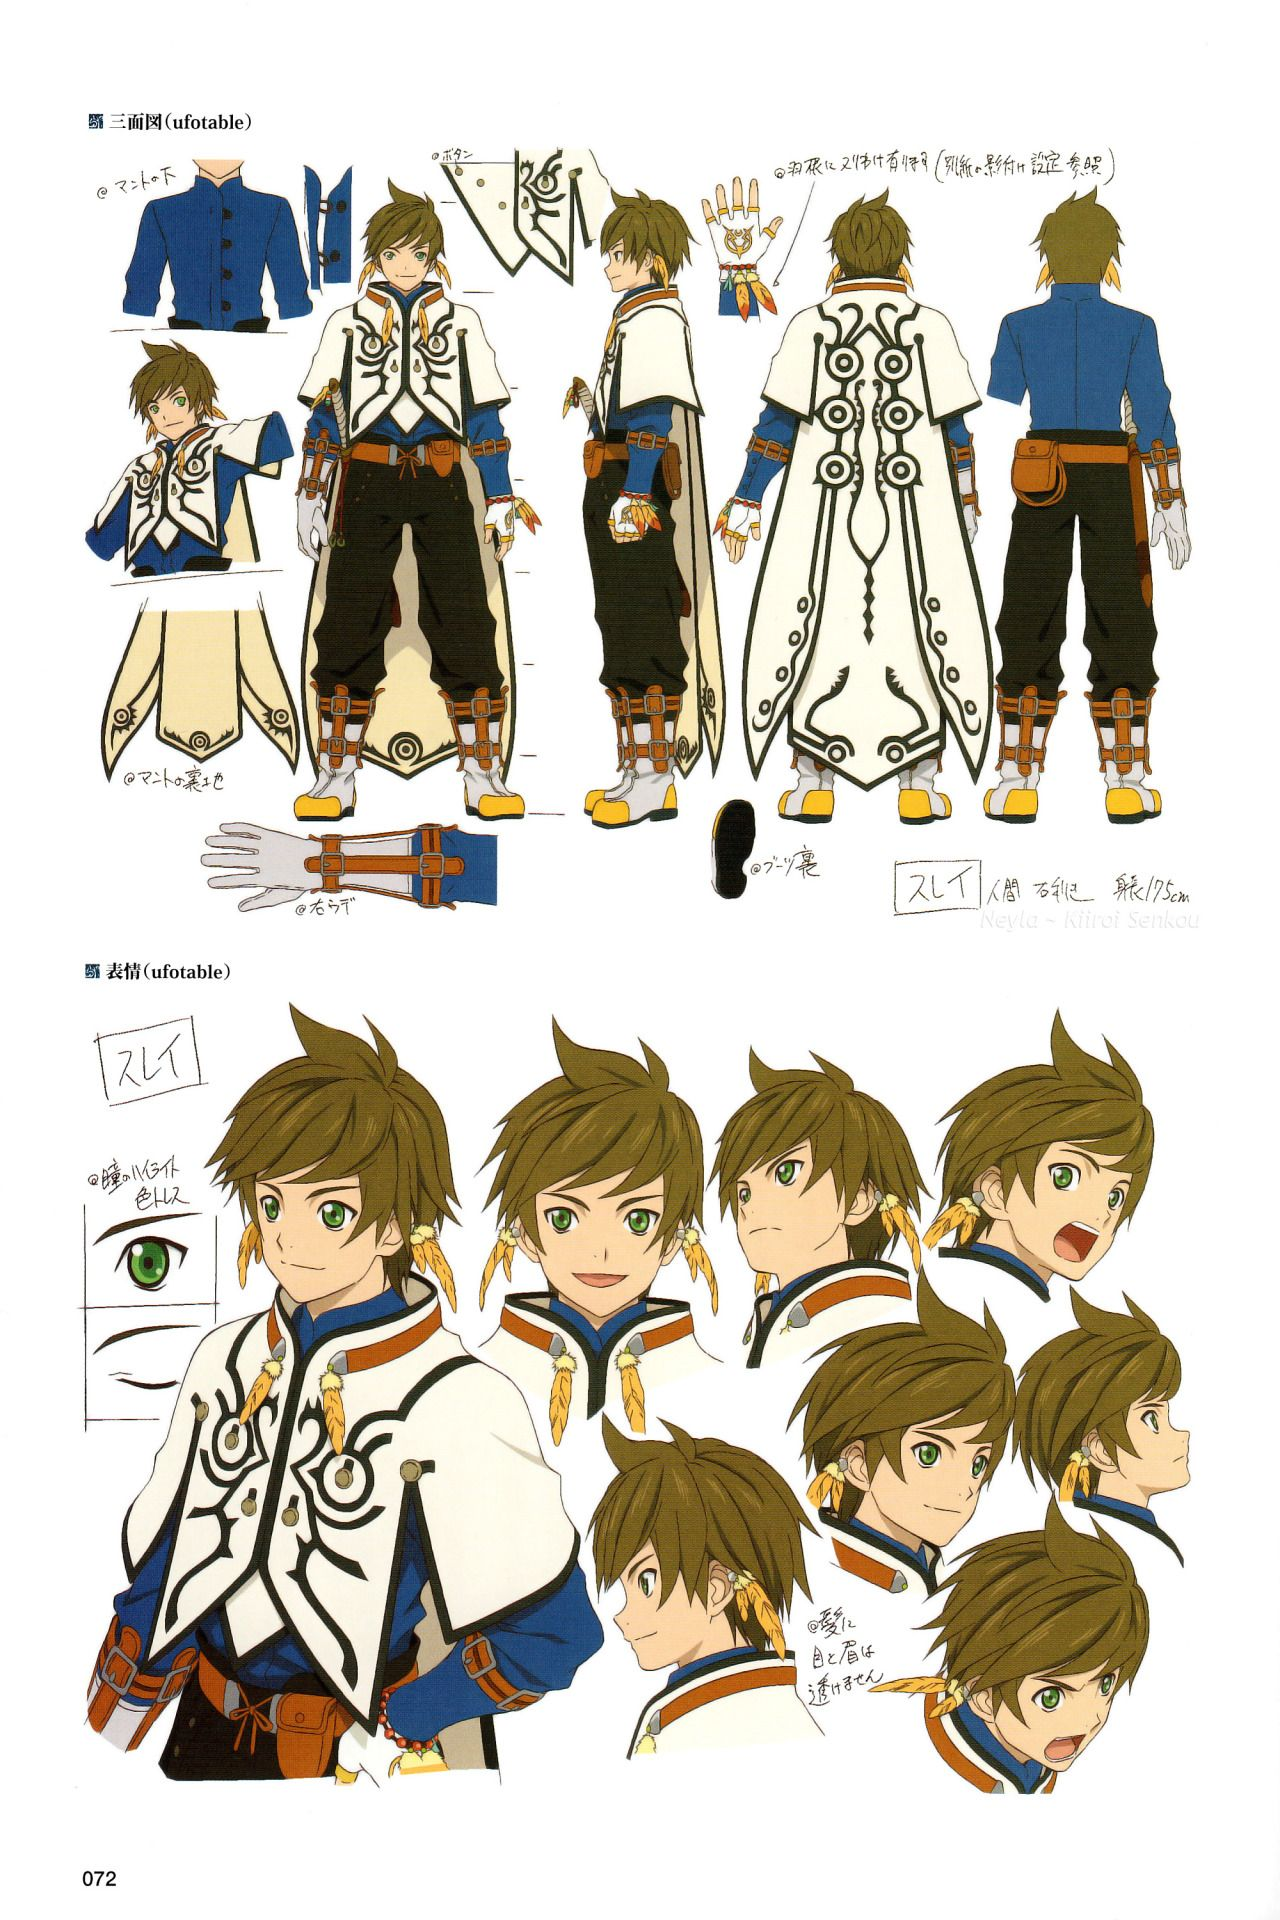 I M Here To Bring Misfortune Tales Of Zestiria Ufotable References Scanned Anime Character Design Character Design Inspiration Character Design